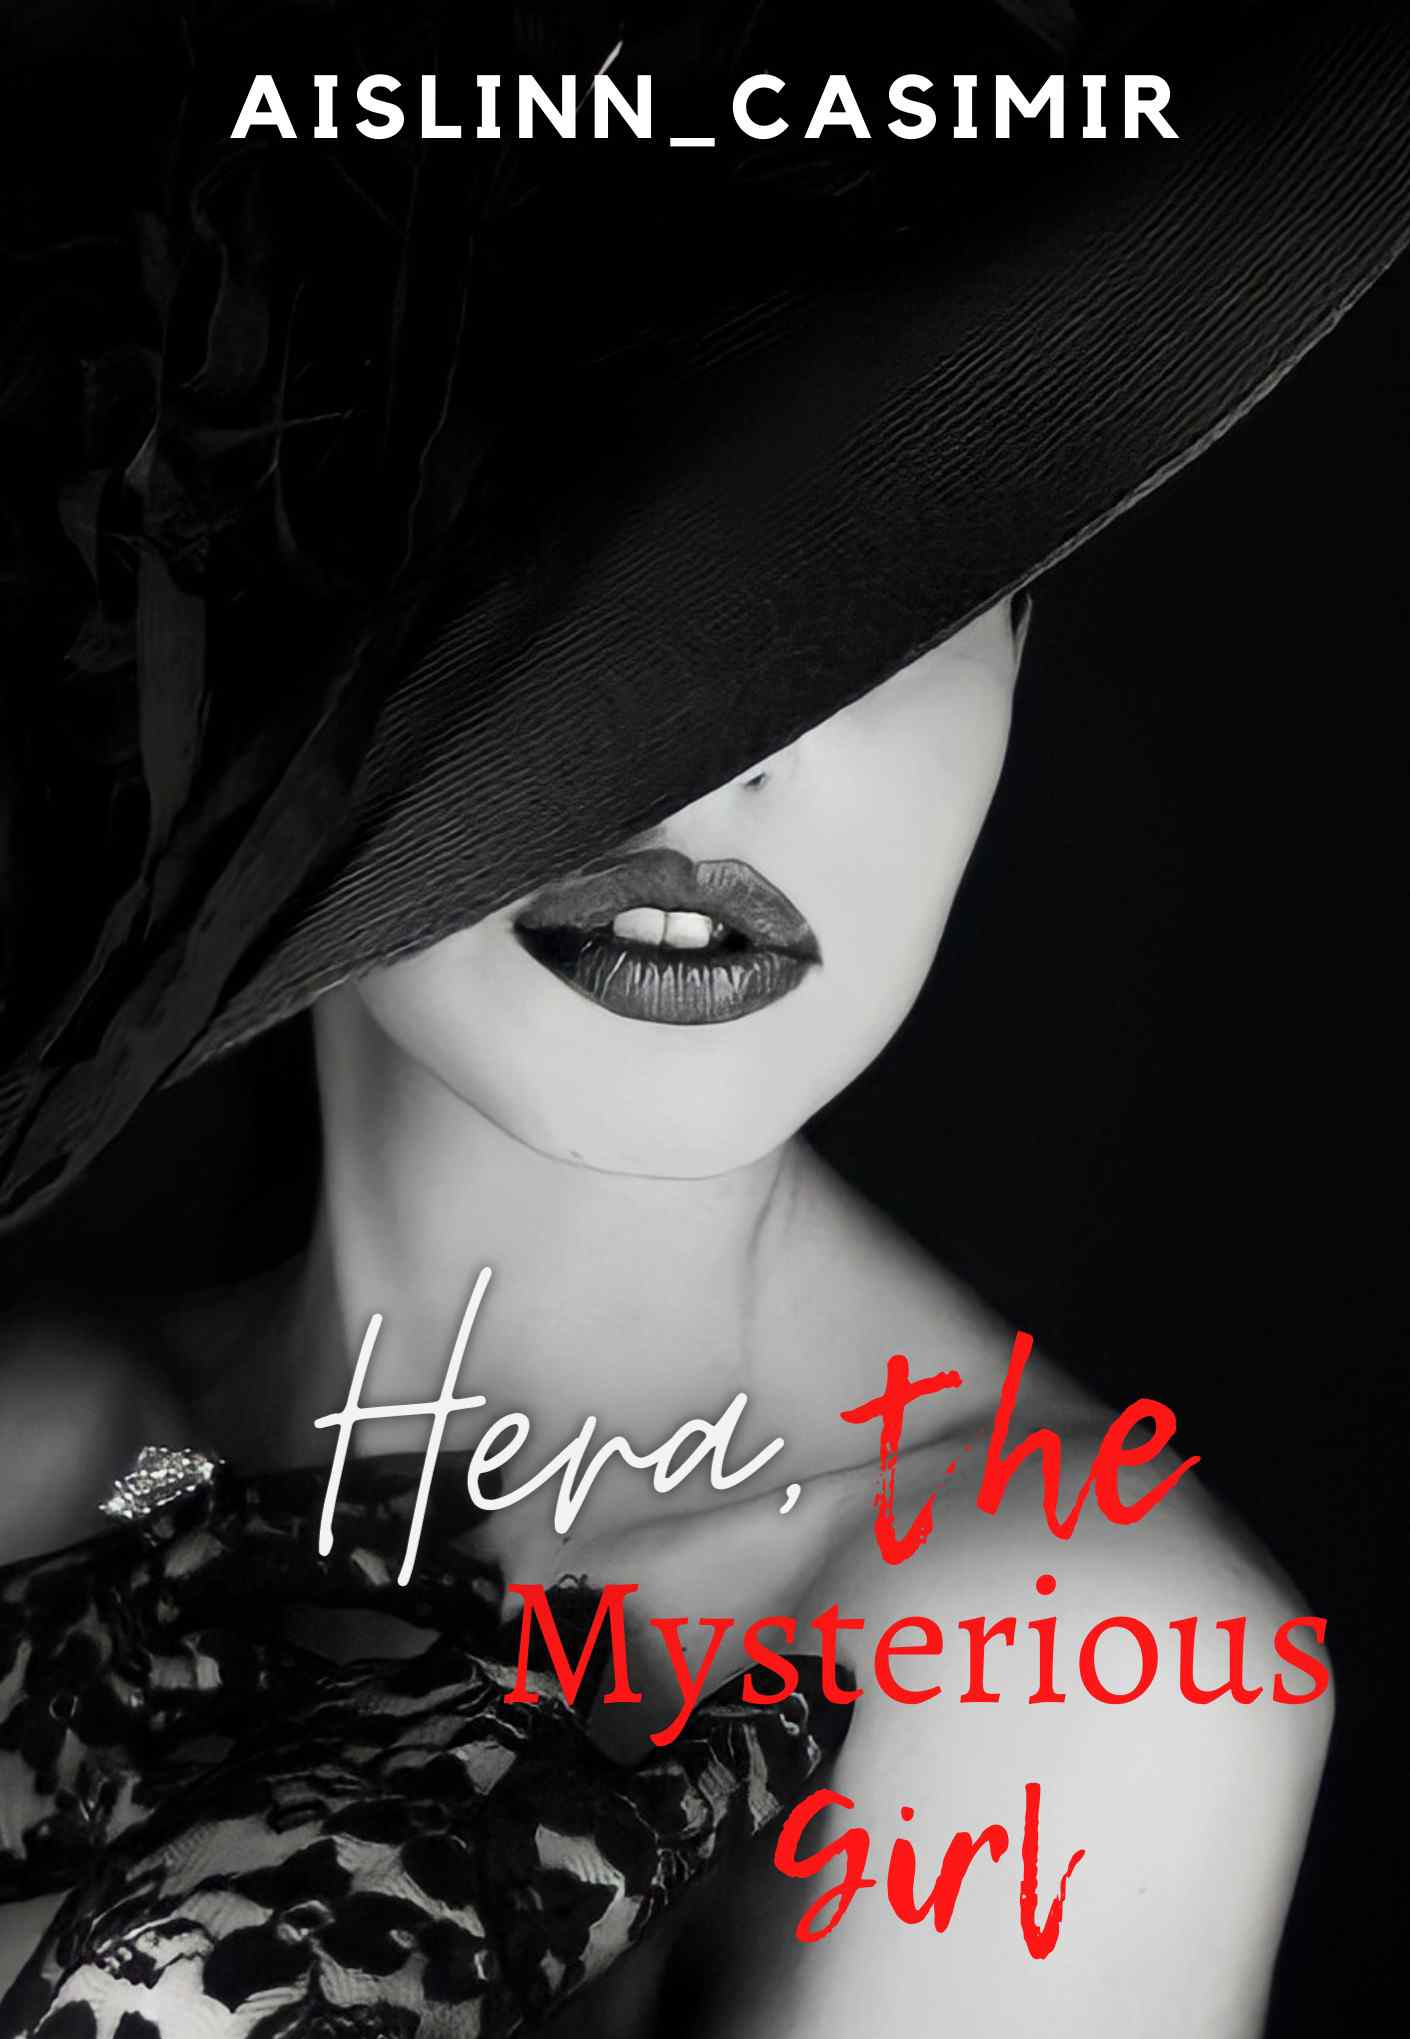 Hera, the Mysterious Girl (Tagalog)